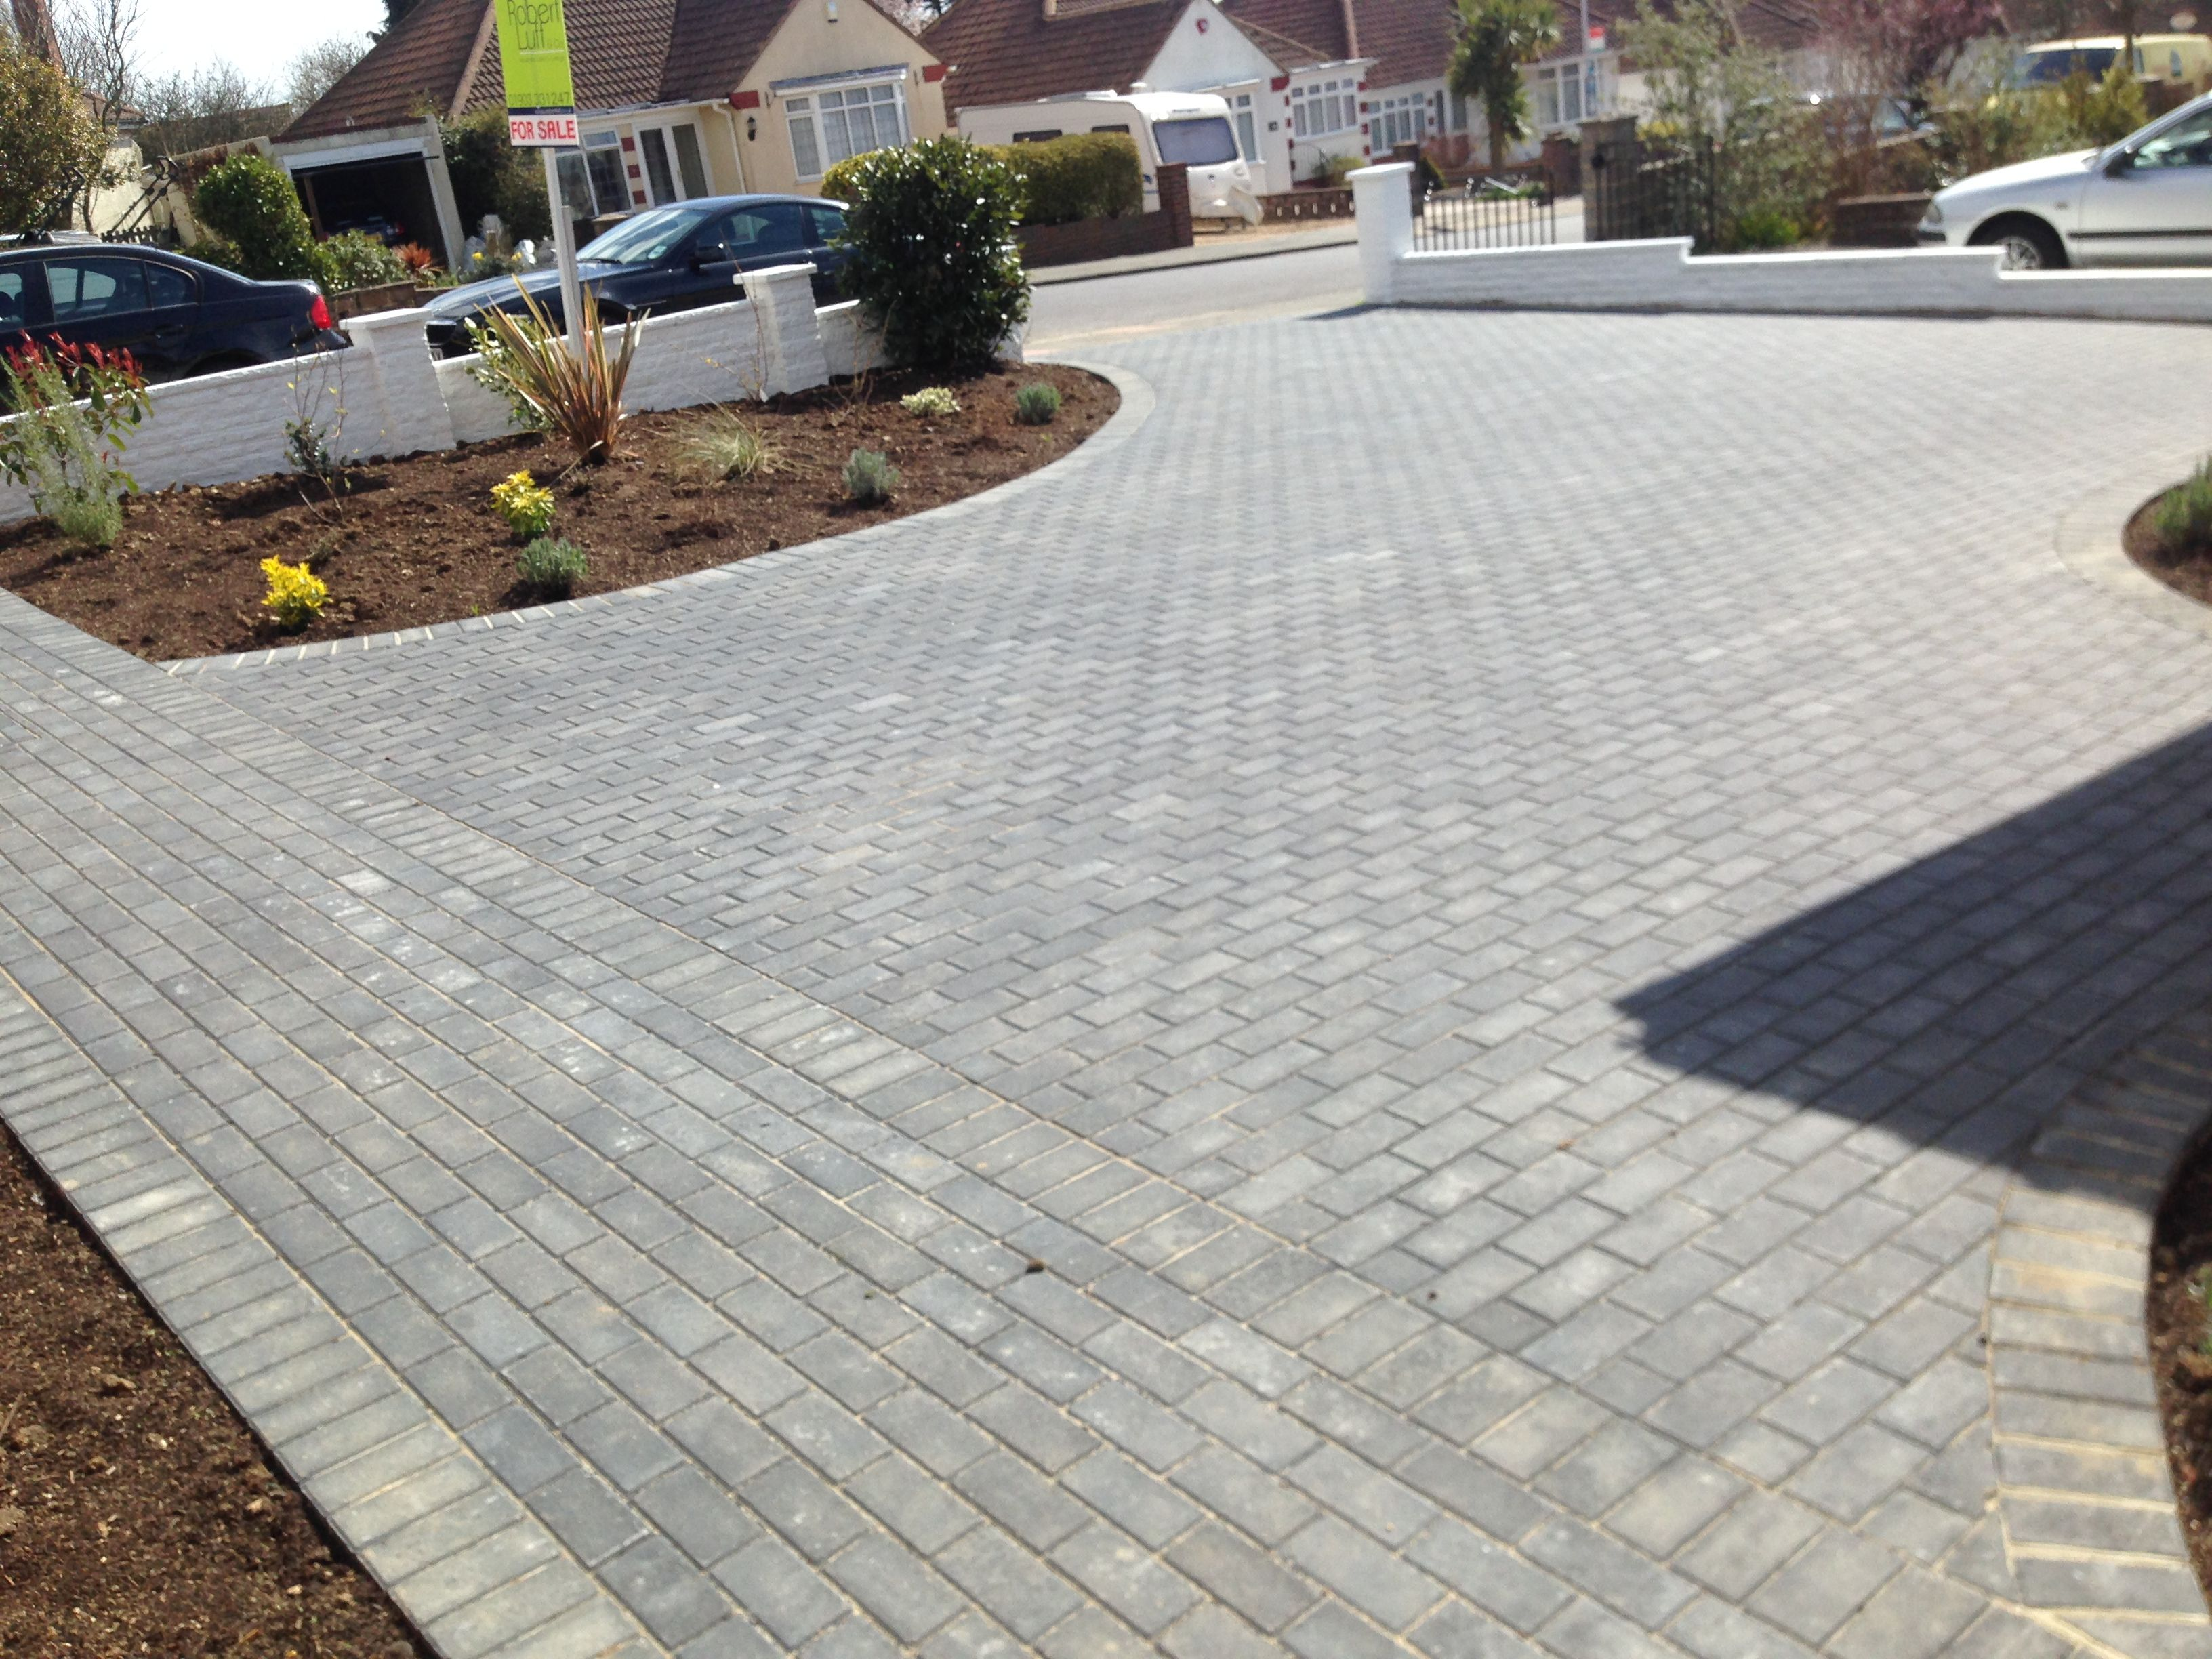 Charcoal block paving driveway finished with planting